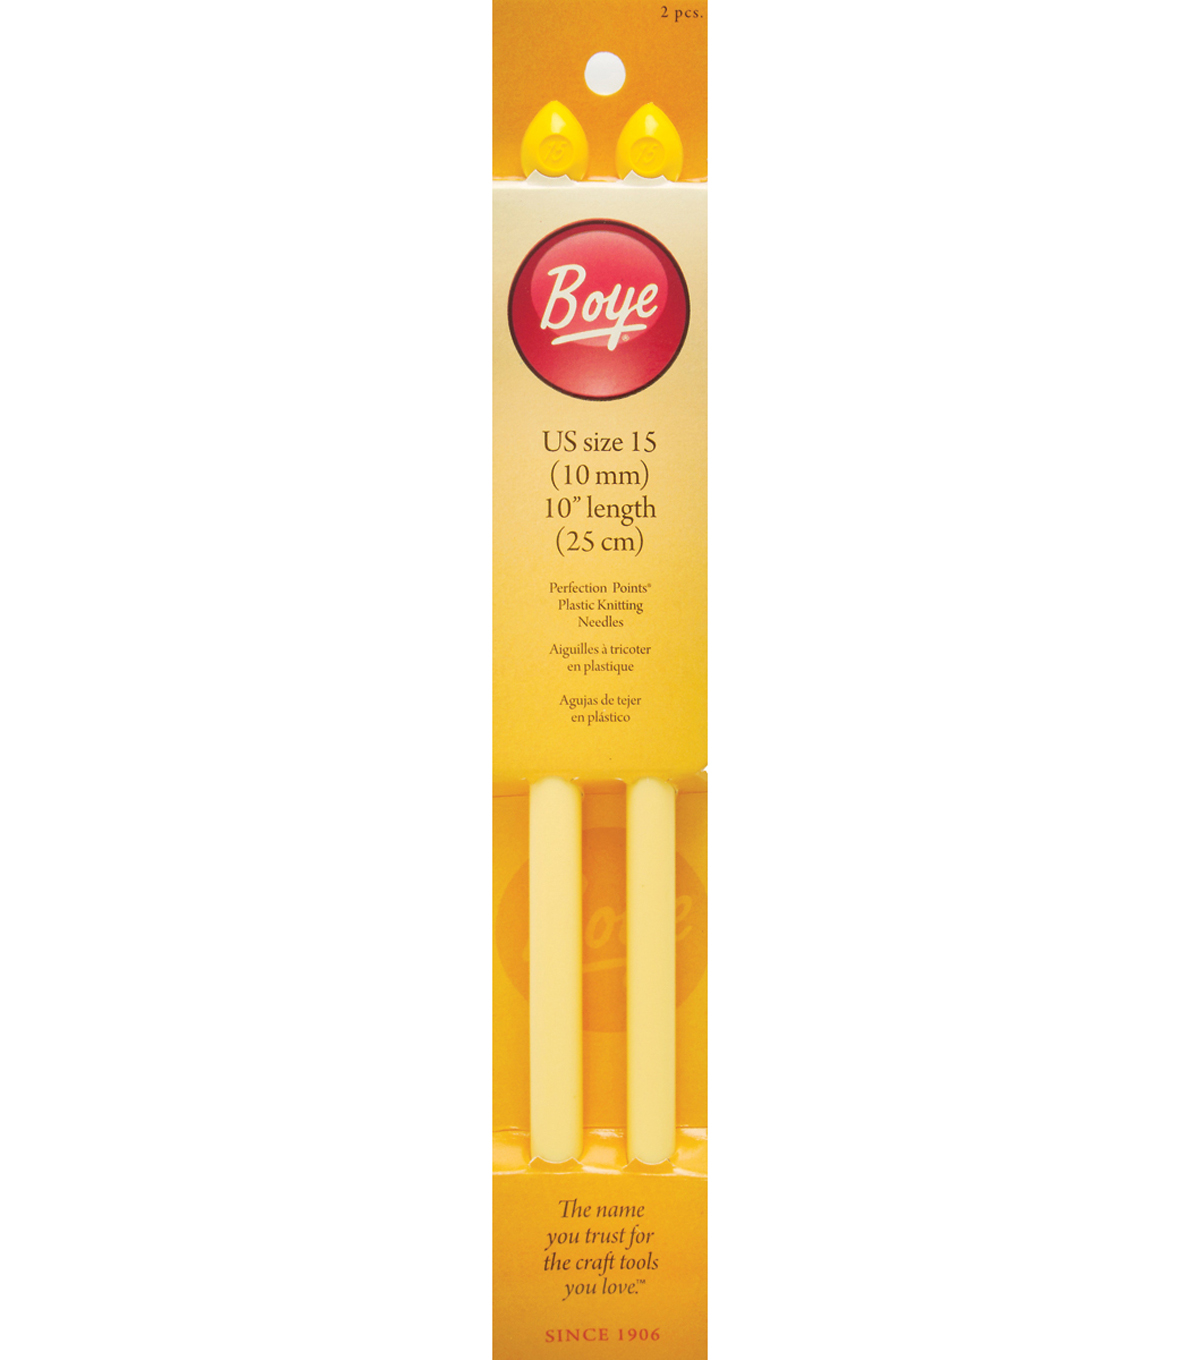 Boye® 2 pk Perfection Points Plastic Knitting Needles